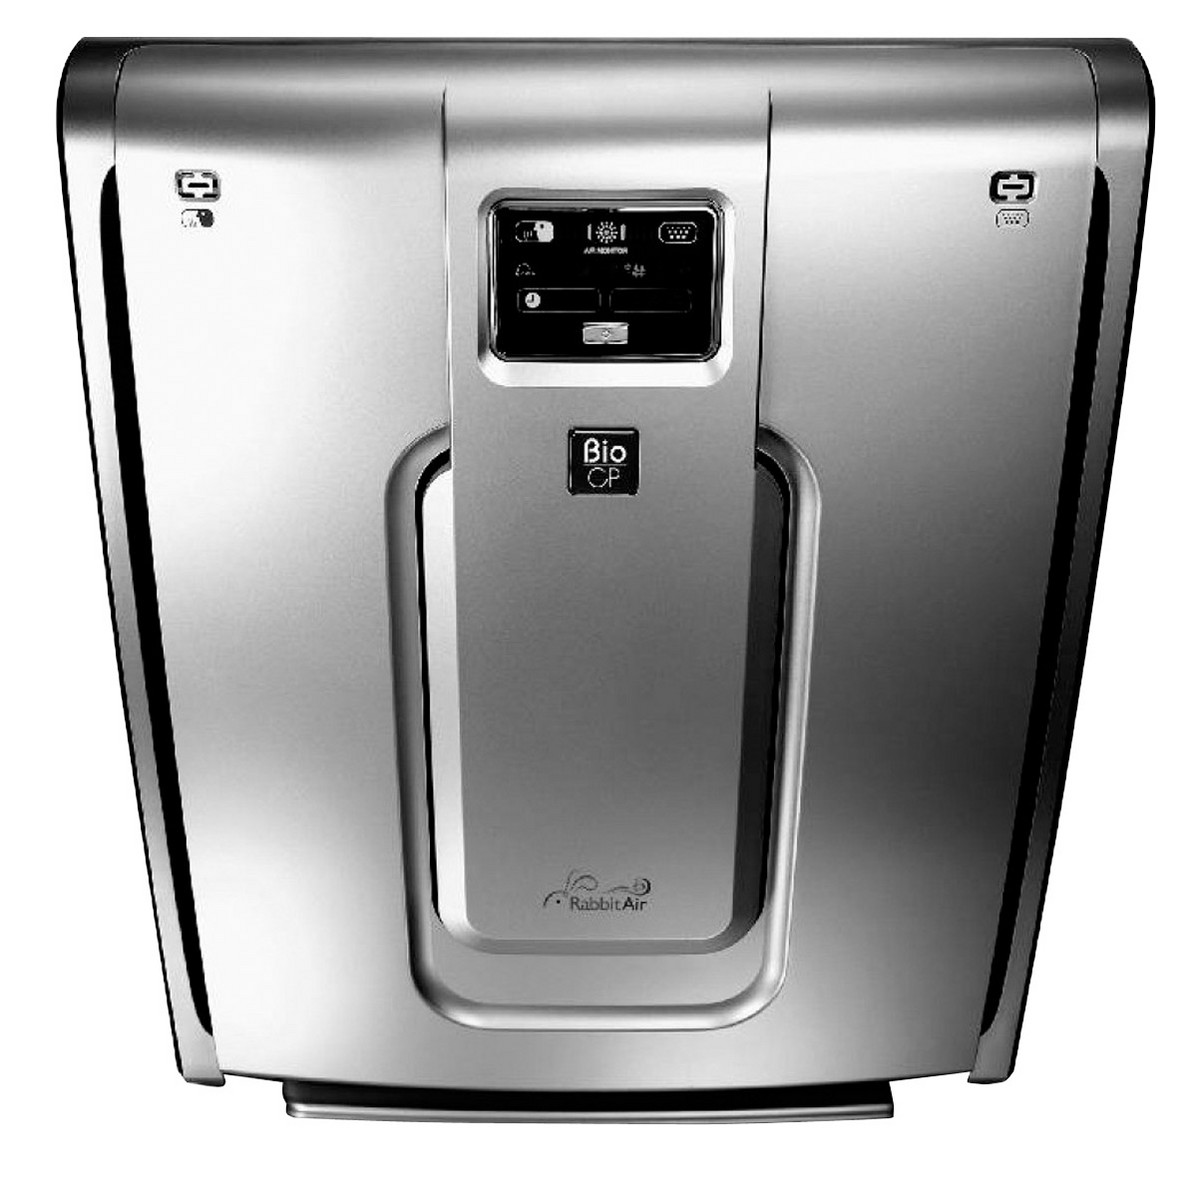 rabbit air spa 582a biogp hepa air purifier 0 0jpg